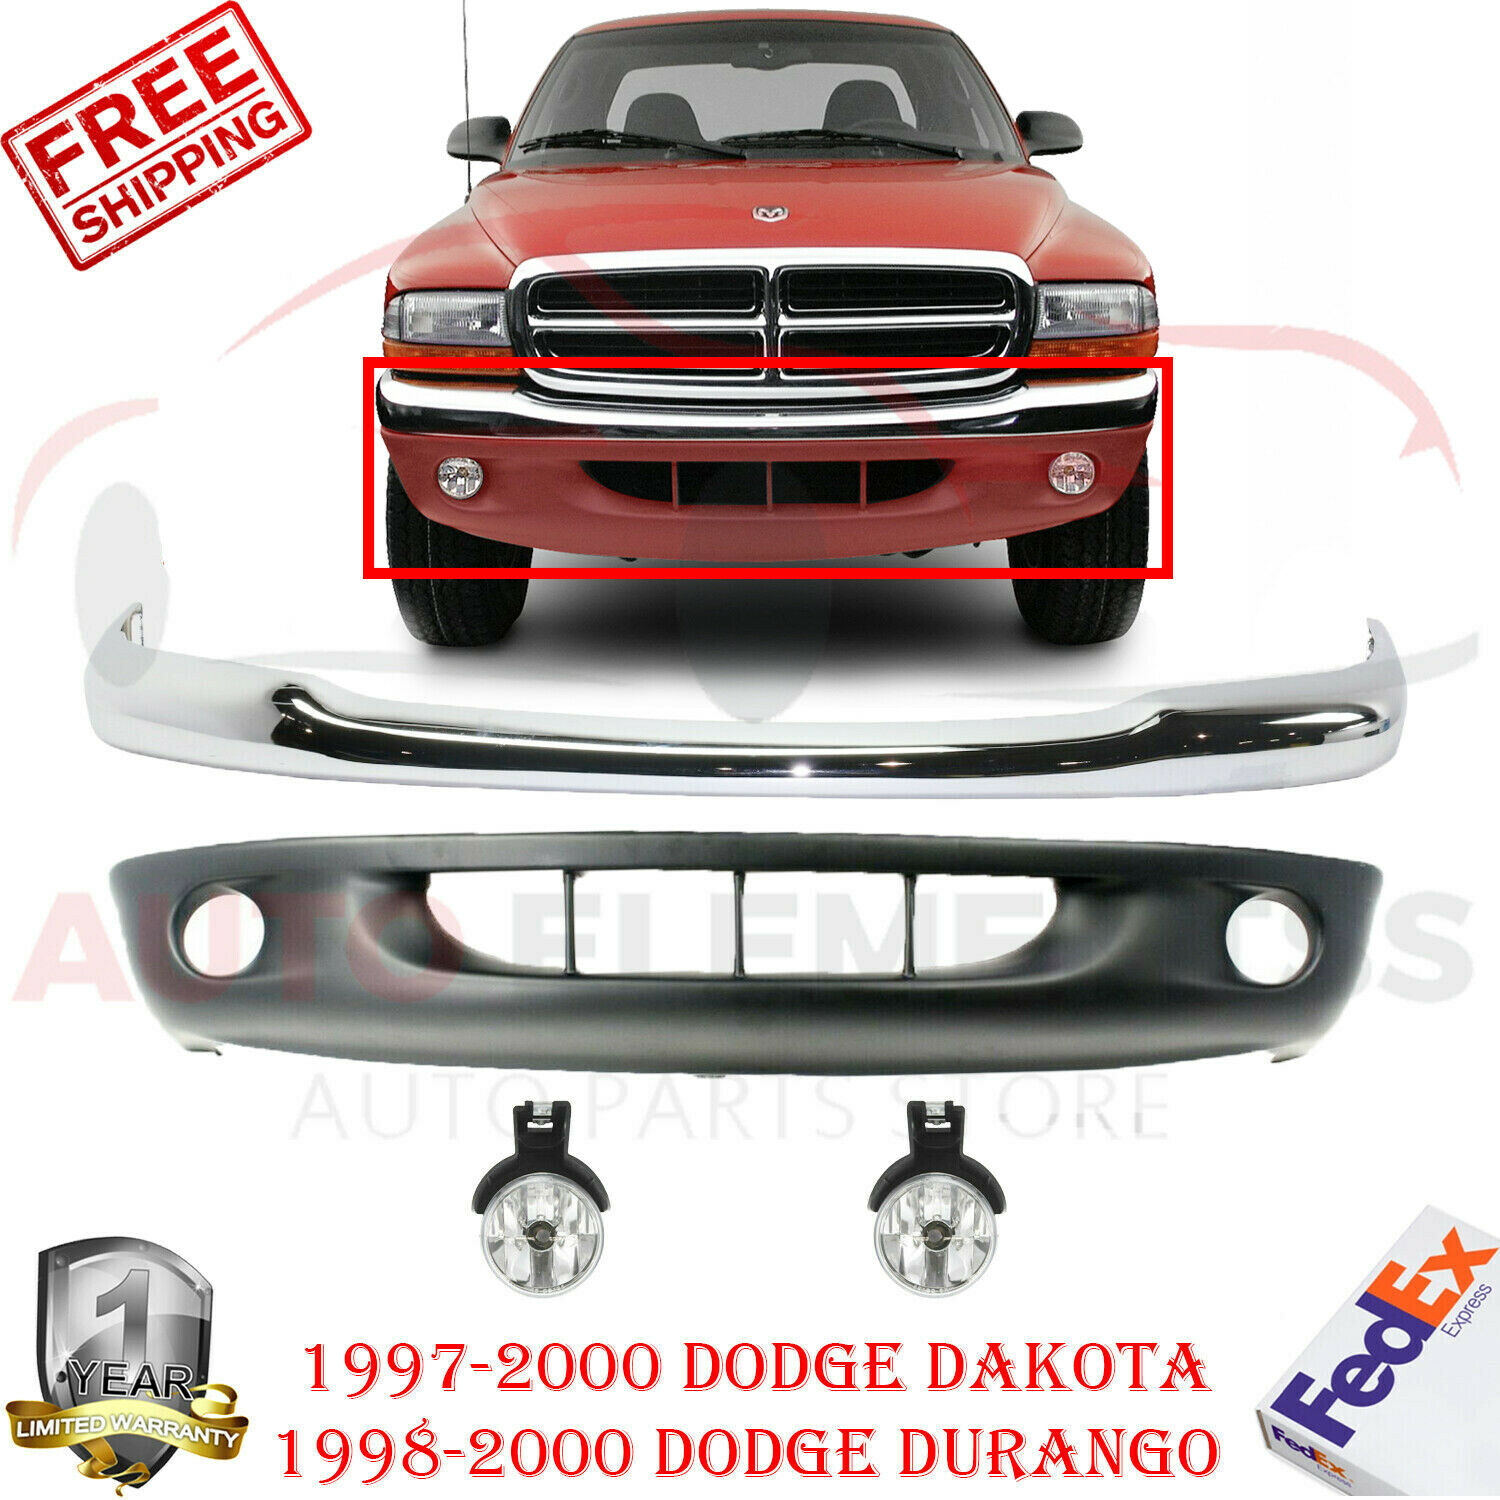 Front Lower Bumper Cover For 1997-2000 Dodge Dakota 2-Piece Type Textured